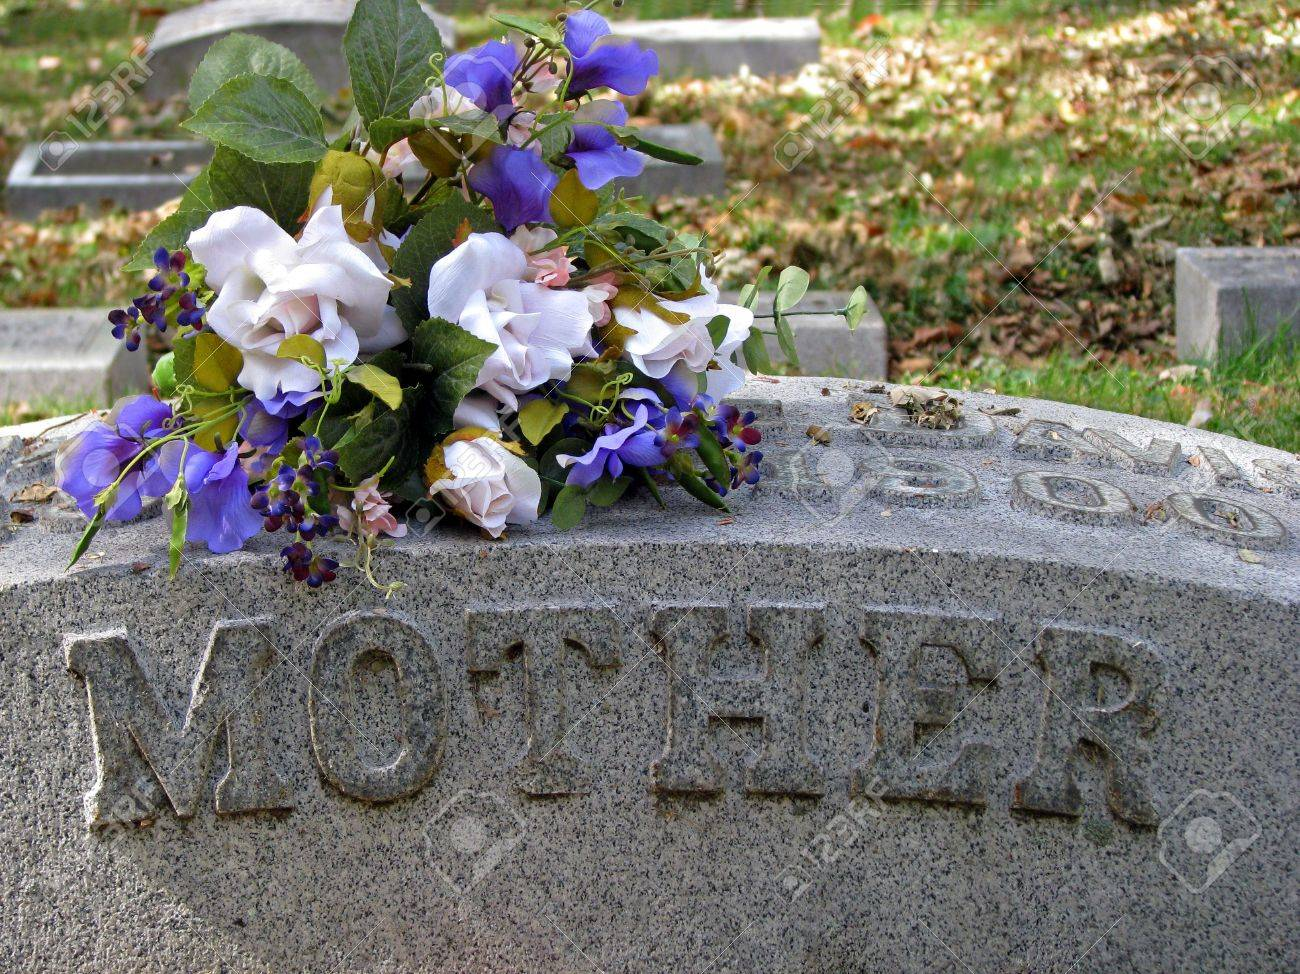 Silk flowers on a cemetery grave headstone mother stock photo silk flowers on a cemetery grave headstone mother stock photo 3721598 mightylinksfo